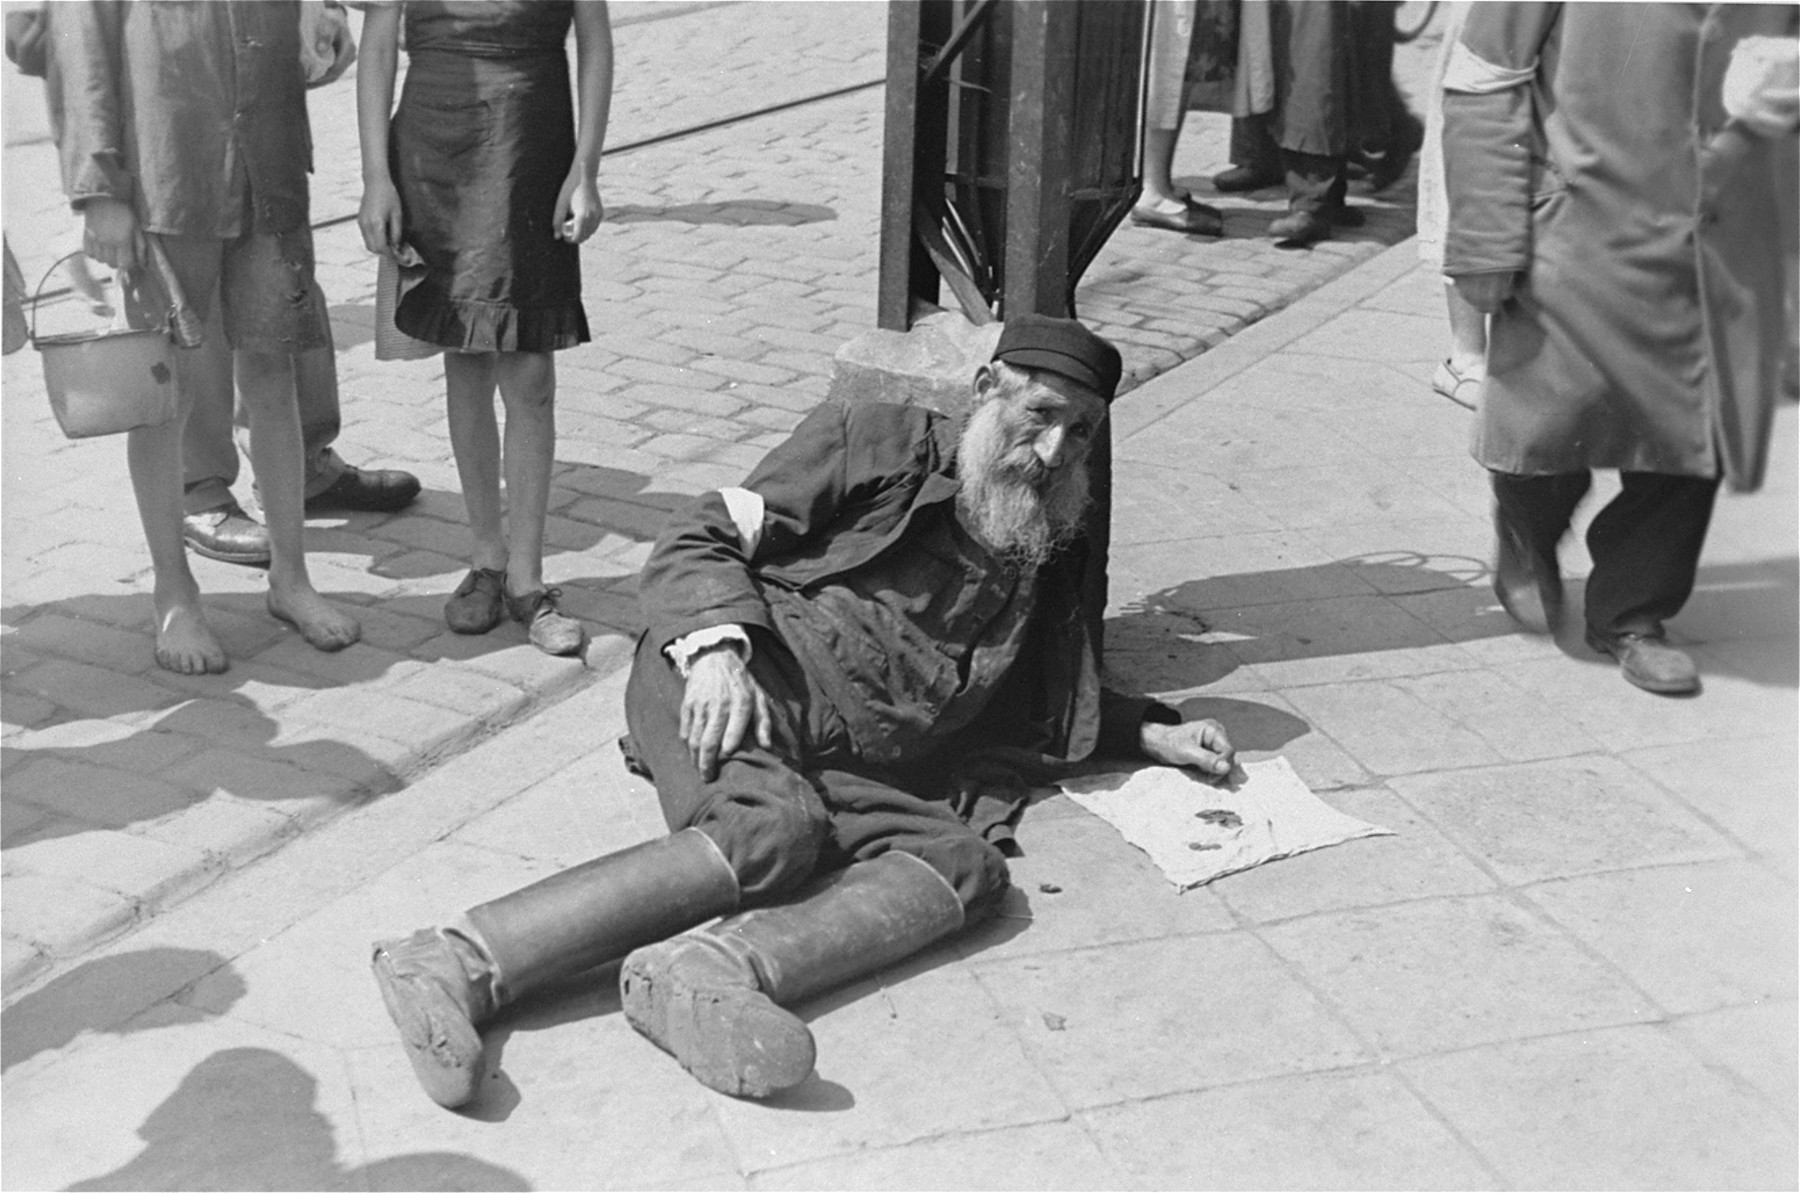 A destitute, elderly man lies on the pavement in the Warsaw ghetto begging for assistance.